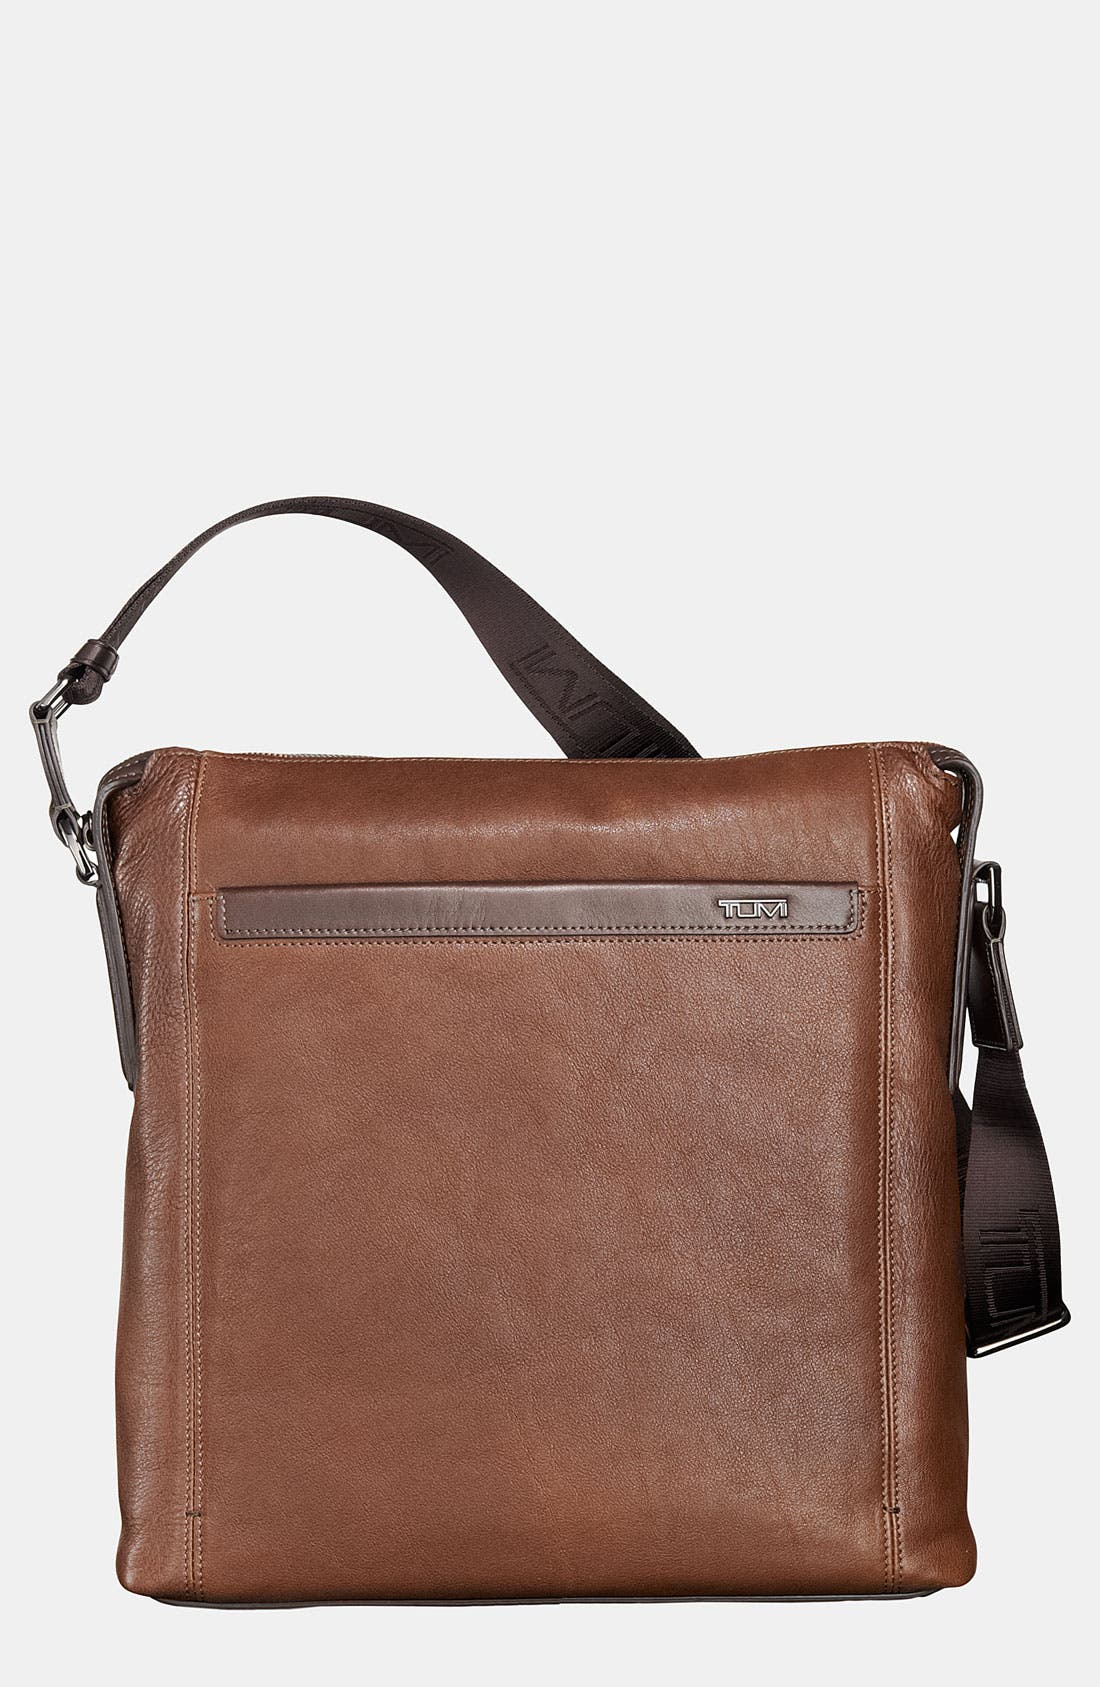 Alternate Image 1 Selected - Tumi 'Centro - Venezia' Crossbody Bag